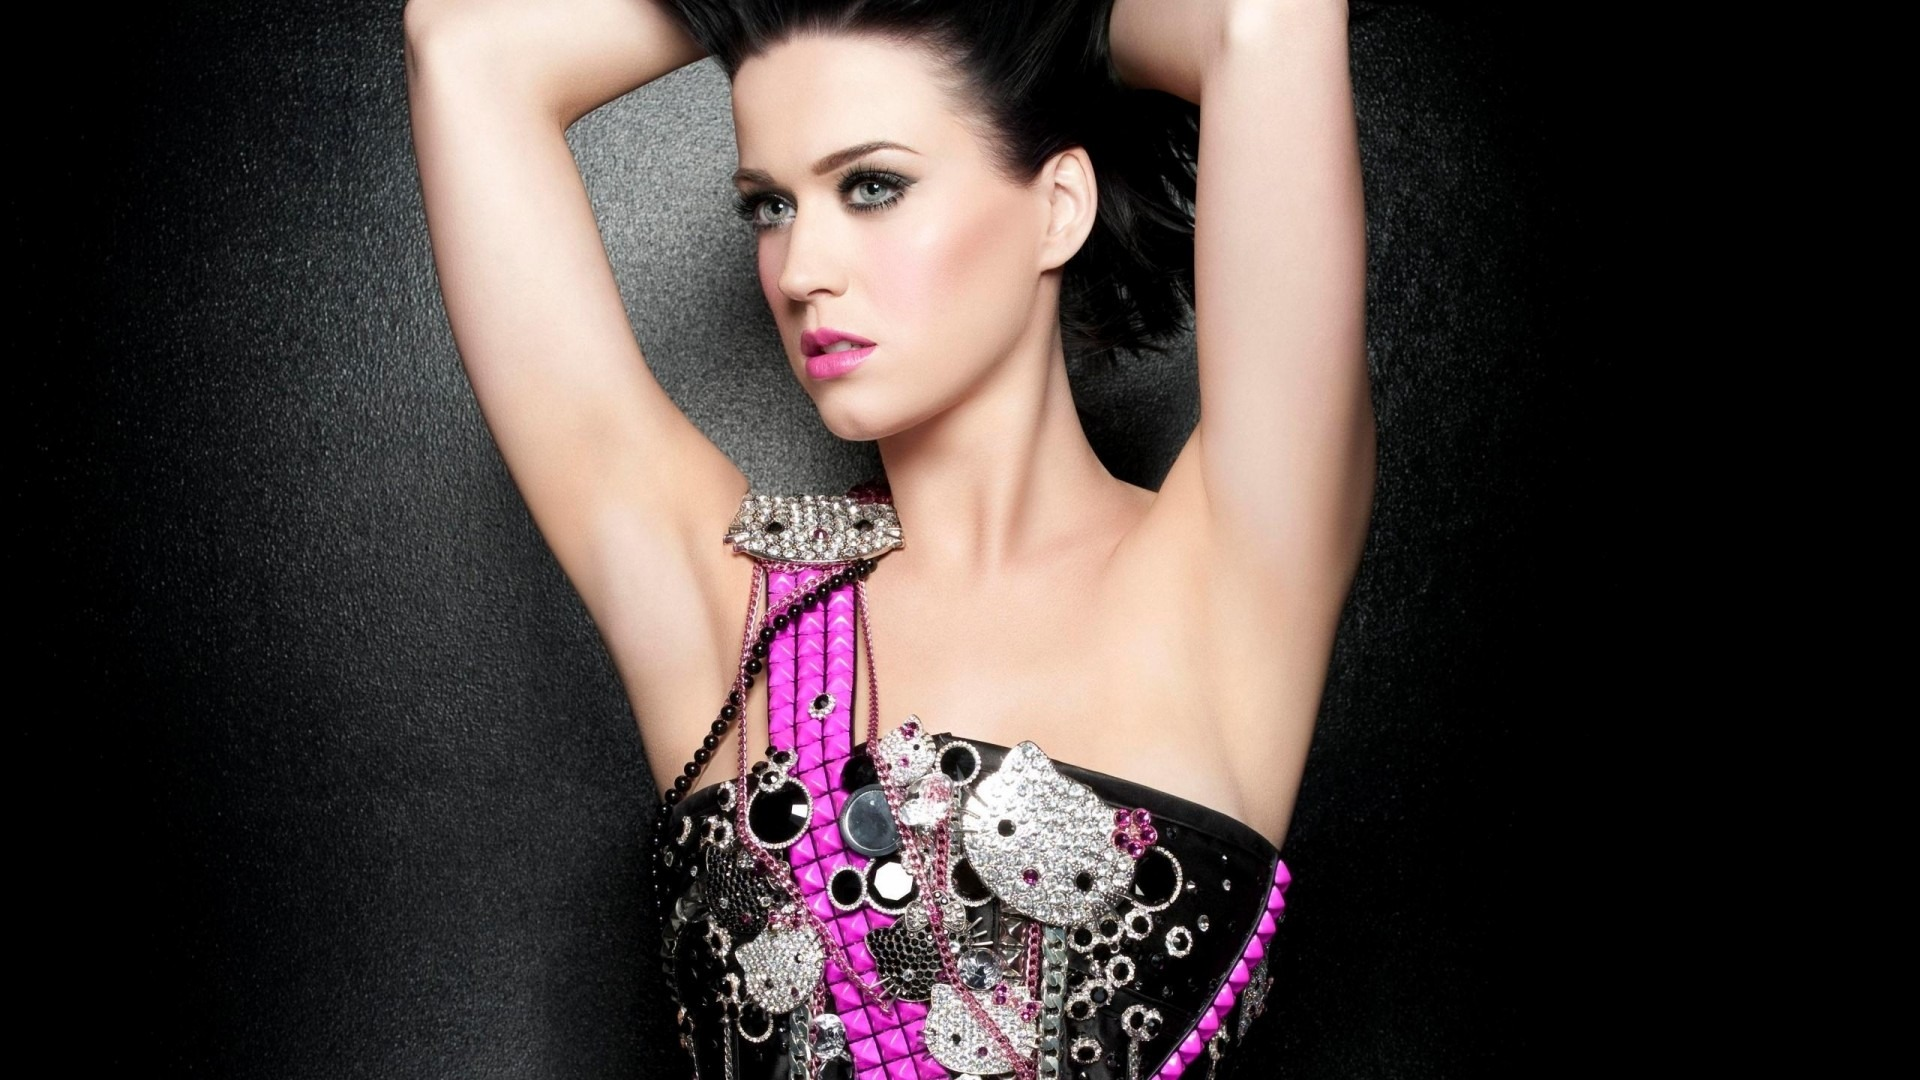 Katy Perry Wallpaper A11